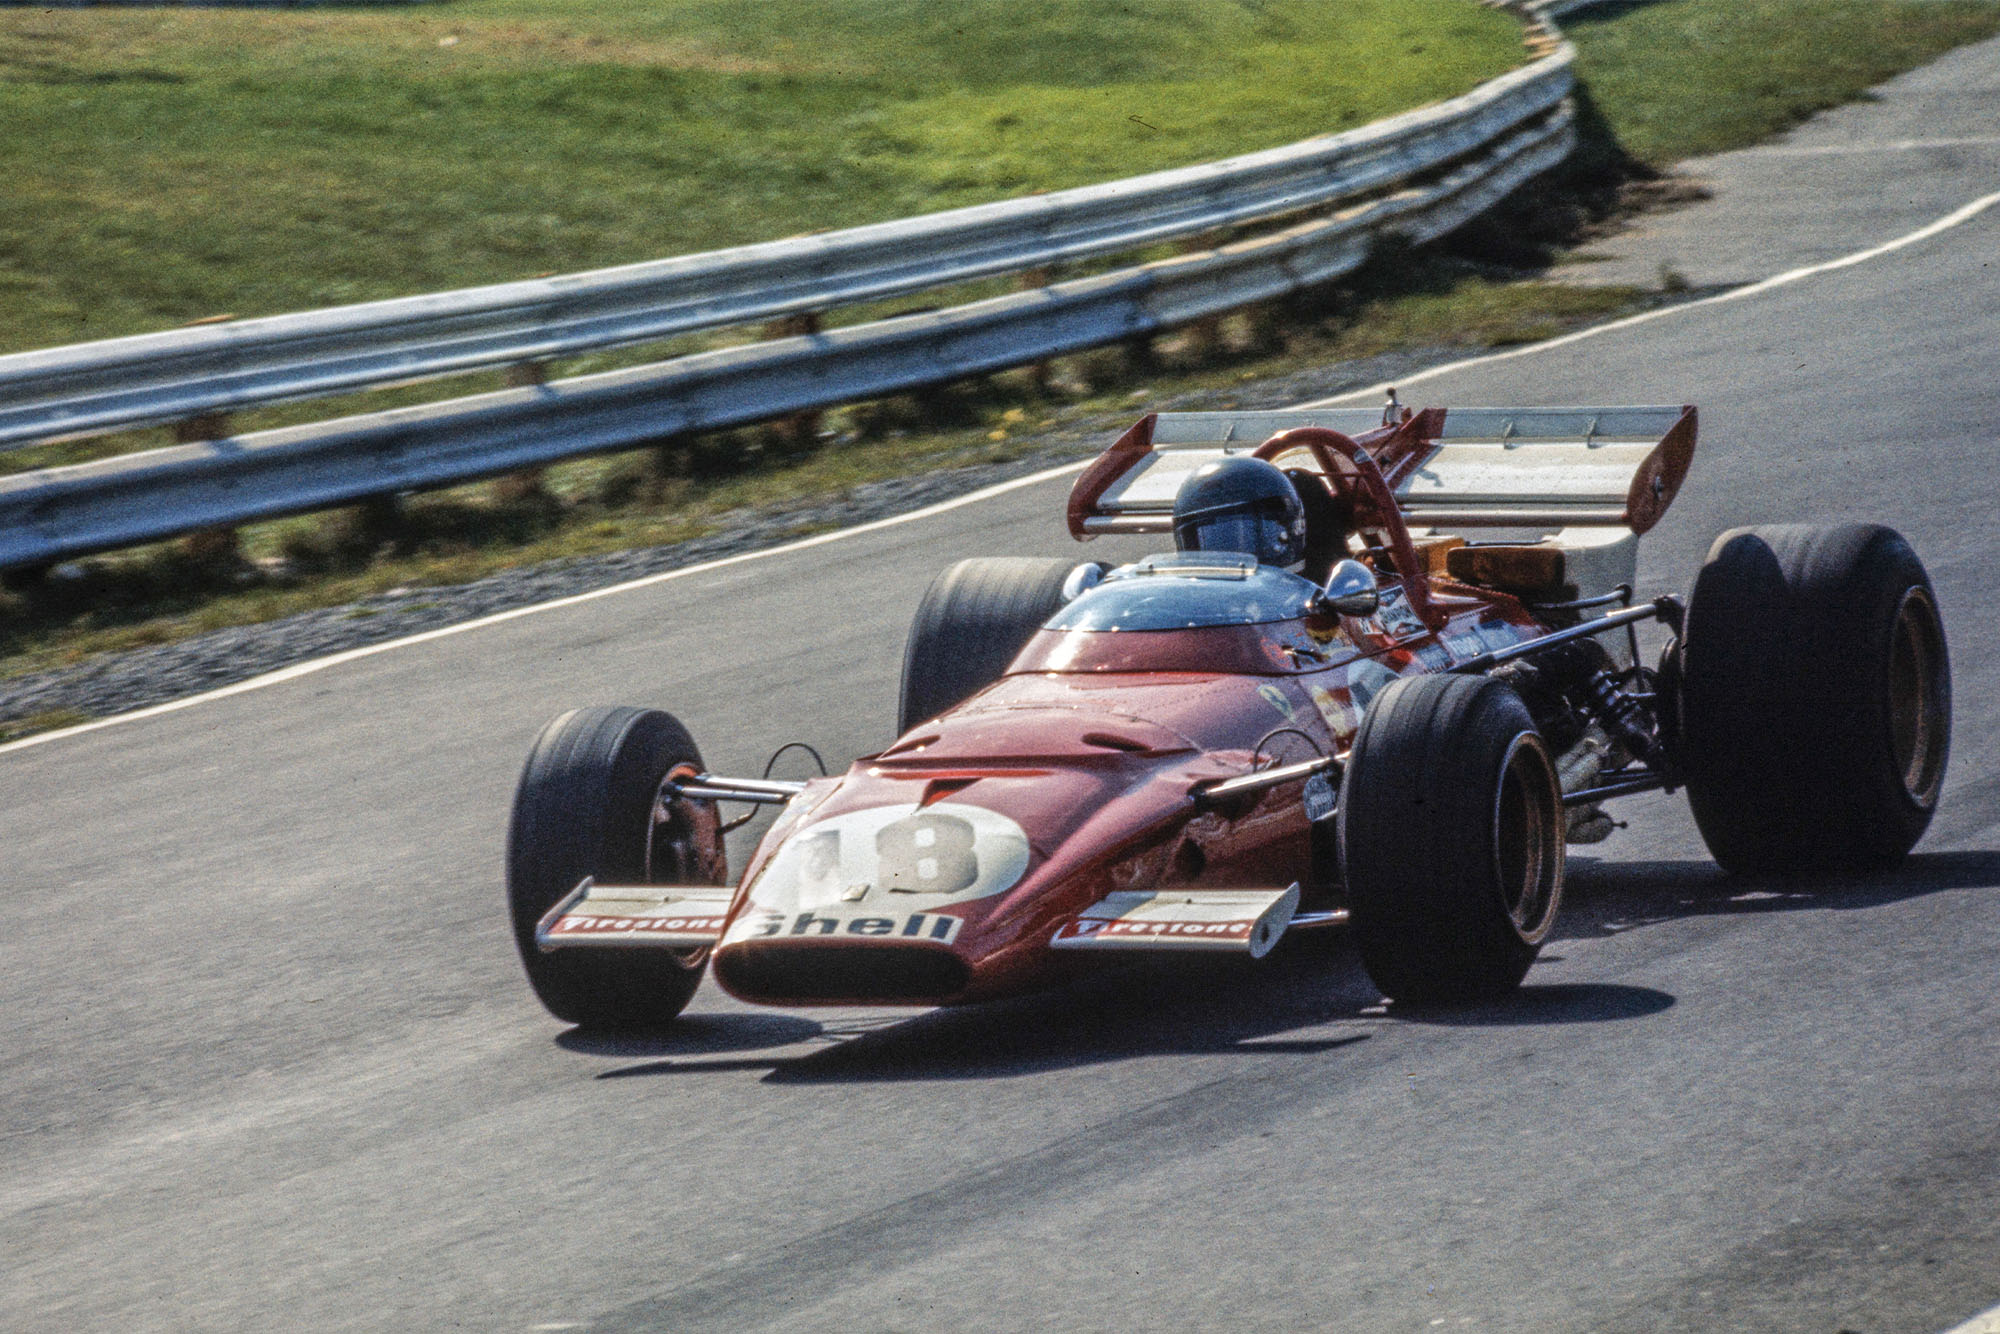 Jacky Ickx driving for Ferrari at the 1970 Canadian Grand Prix.